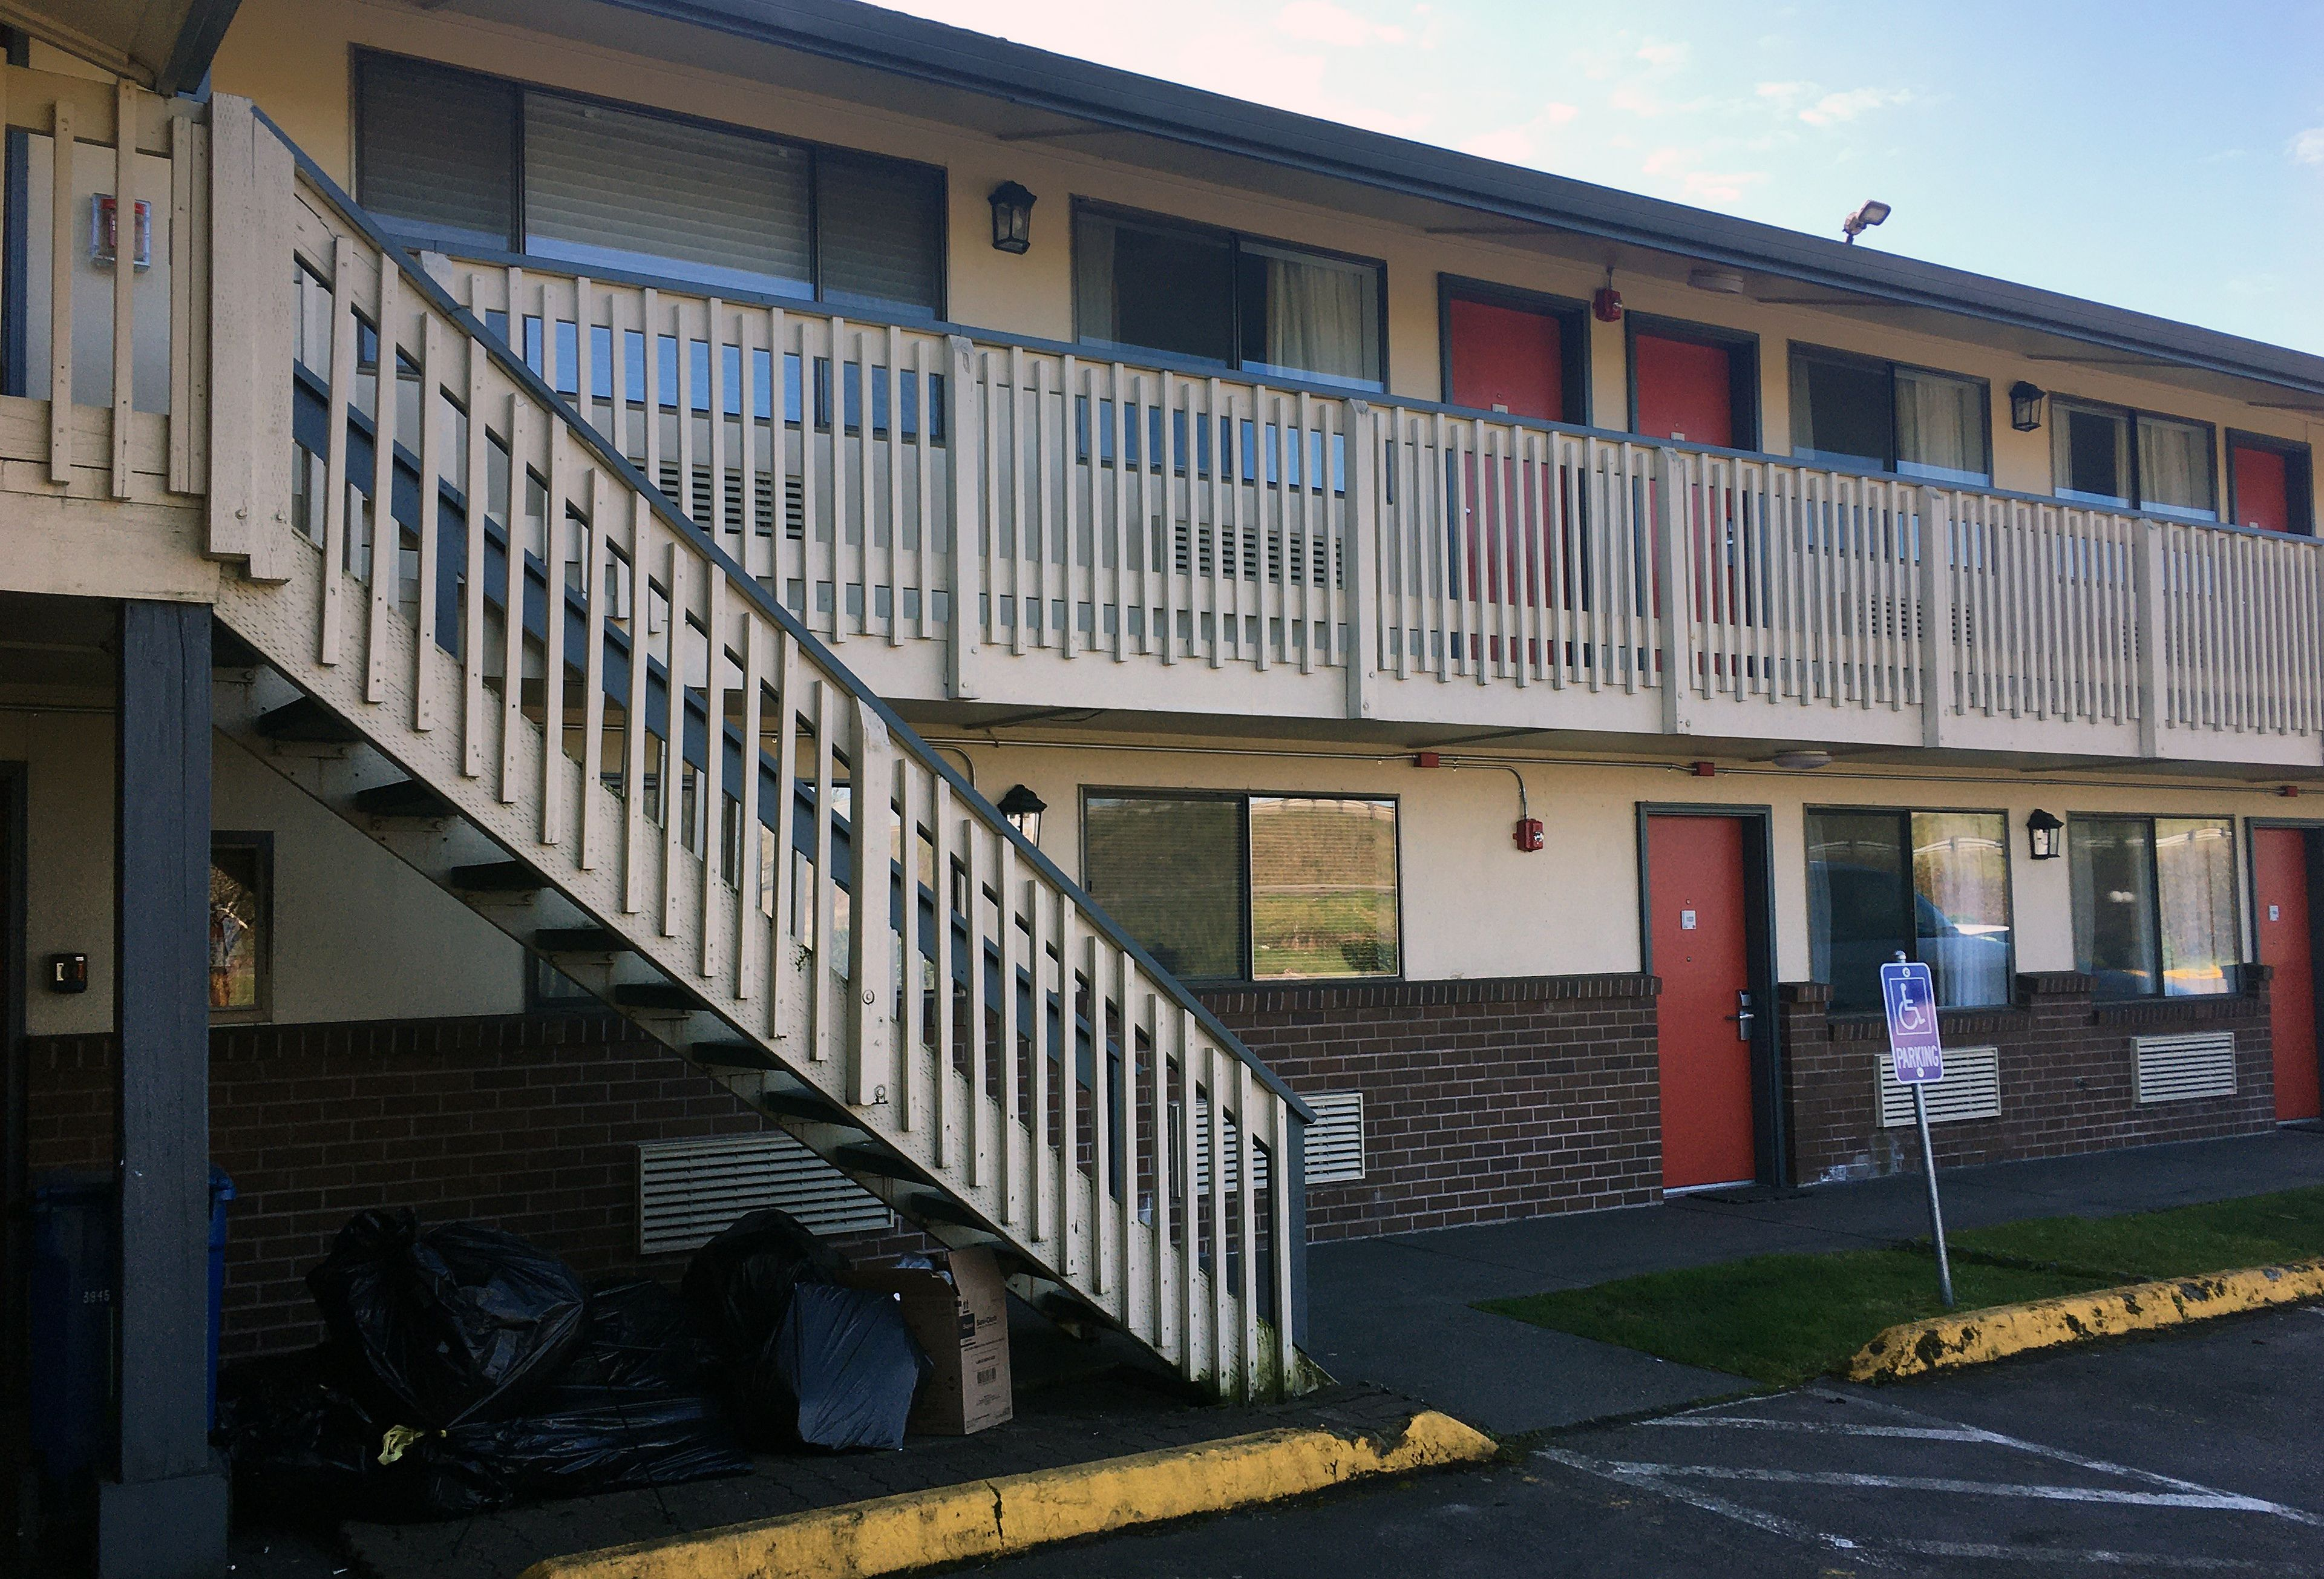 The Kent quarantine motel is pictured in Kent, Washington state on March 9, 2020. (Photo by MICHELLE WALLARD MARTIN/AFP via Getty Images)